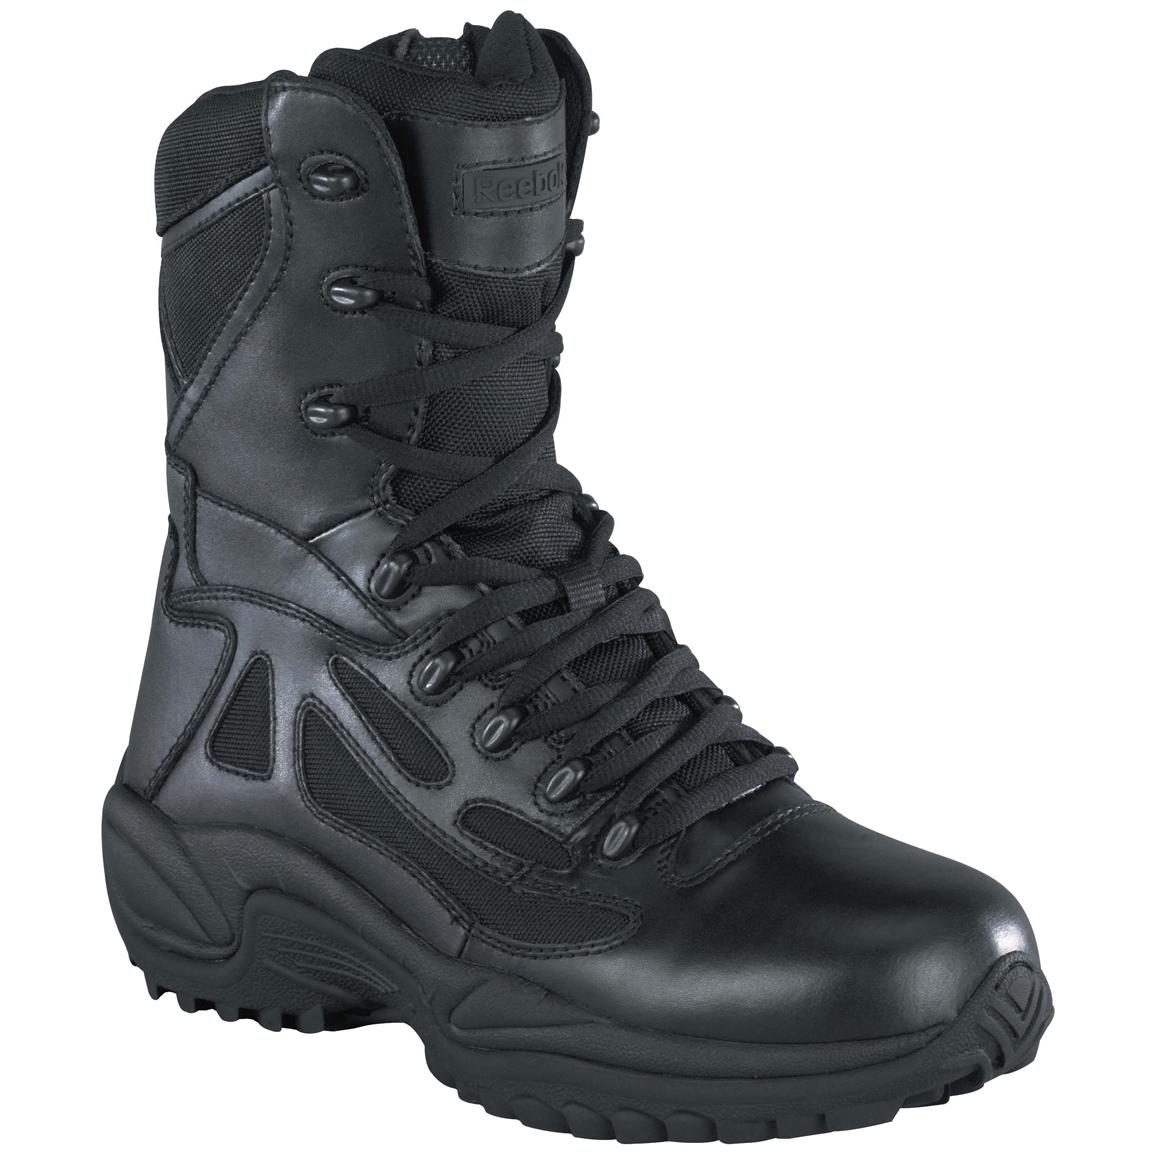 Men's Reebok® 8 inch Side Zip Stealth Tactical Boots, Black